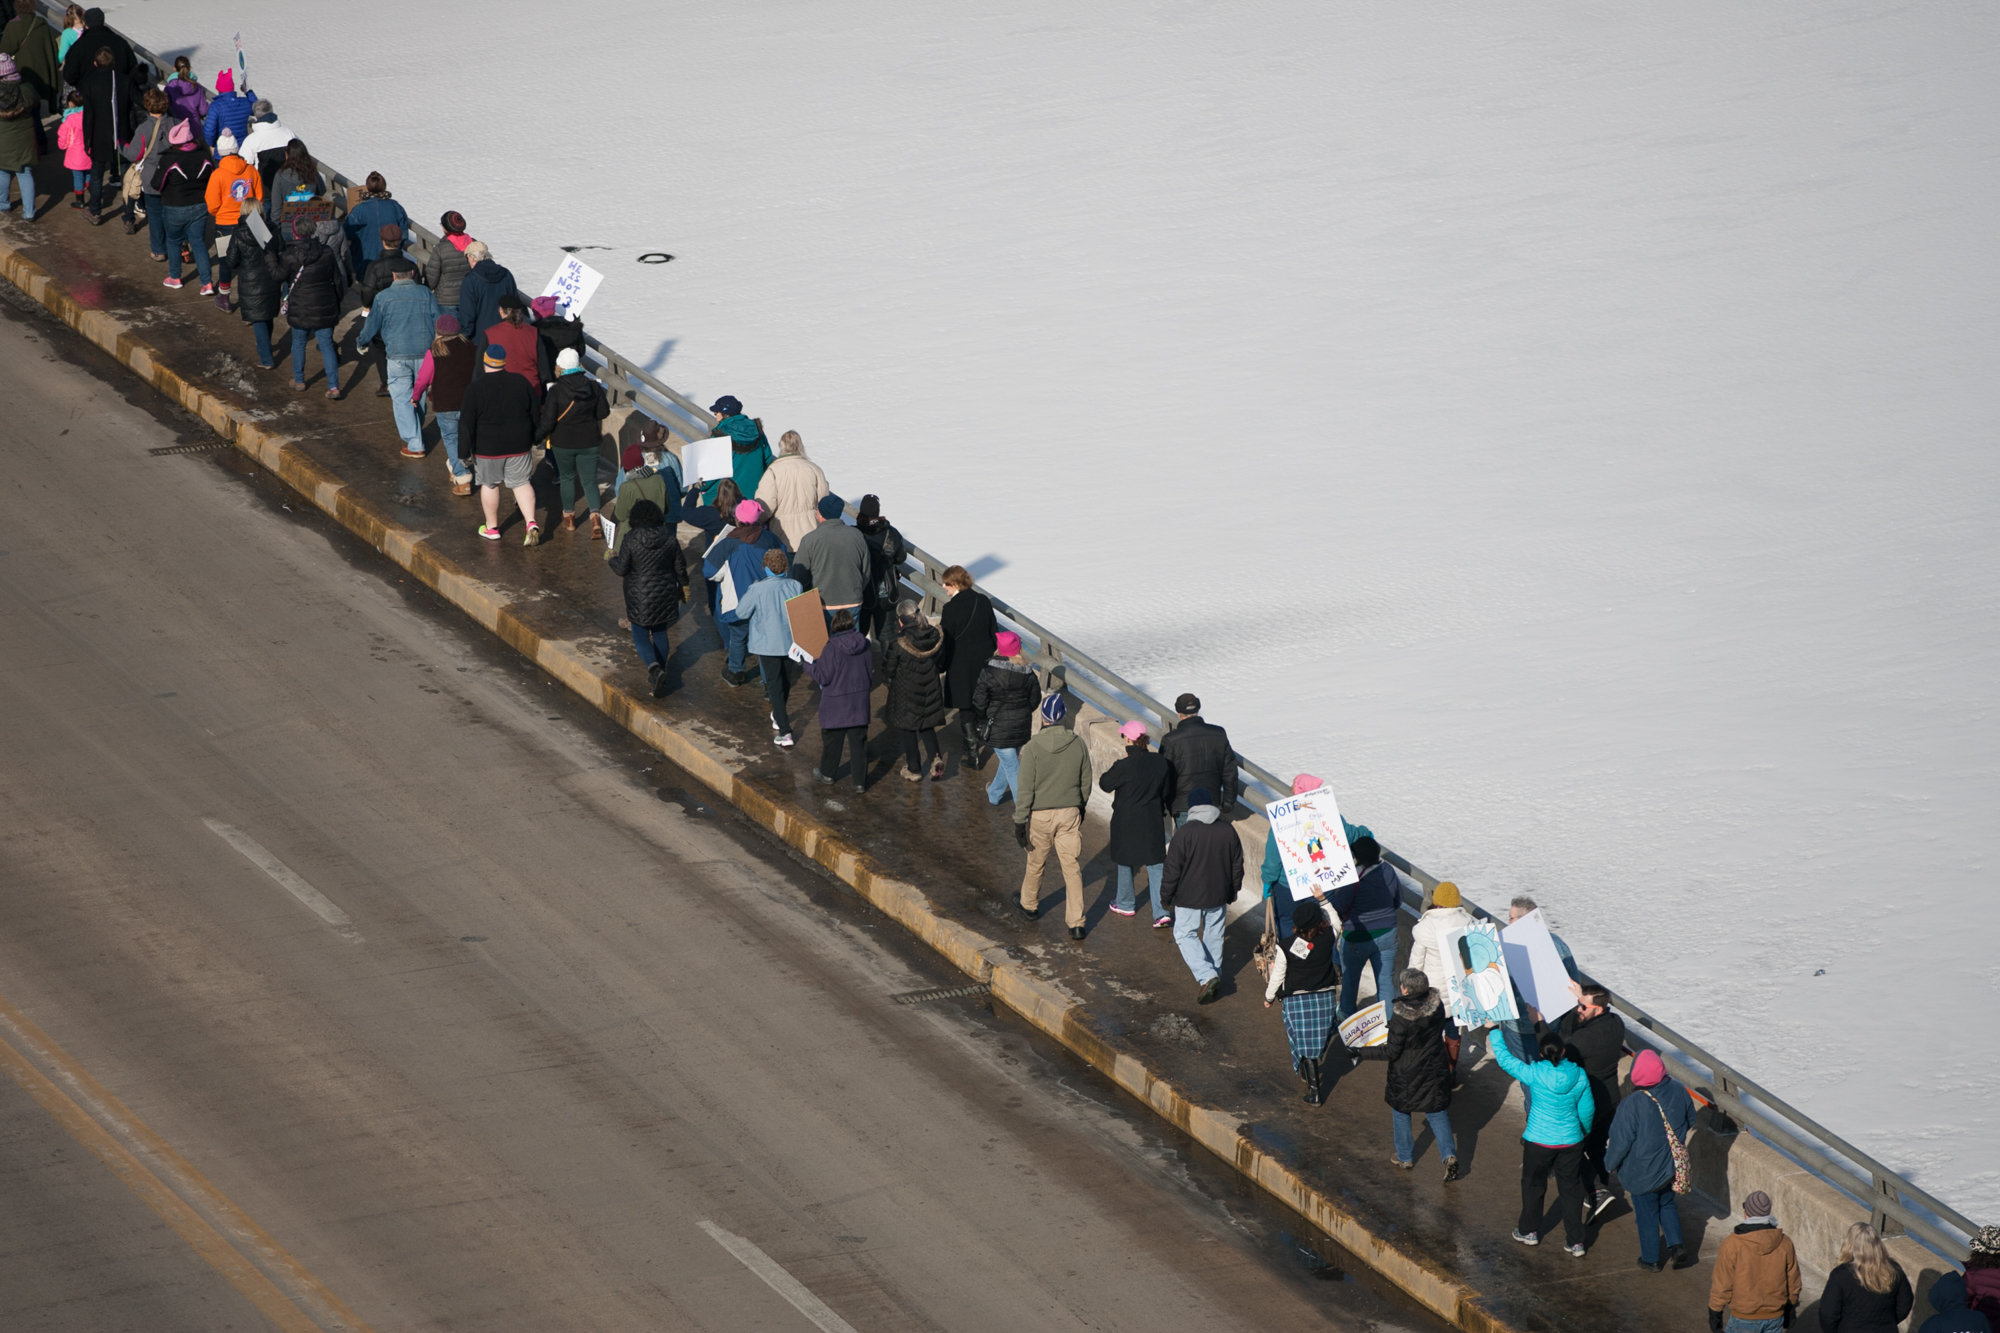 Participants of the second Rockford Women's March walk to protect and advance women's rights on Saturday, Jan. 20, 2018, at State Street in Rockford. [SCOTT P. YATES/RRSTAR.COM STAFF]